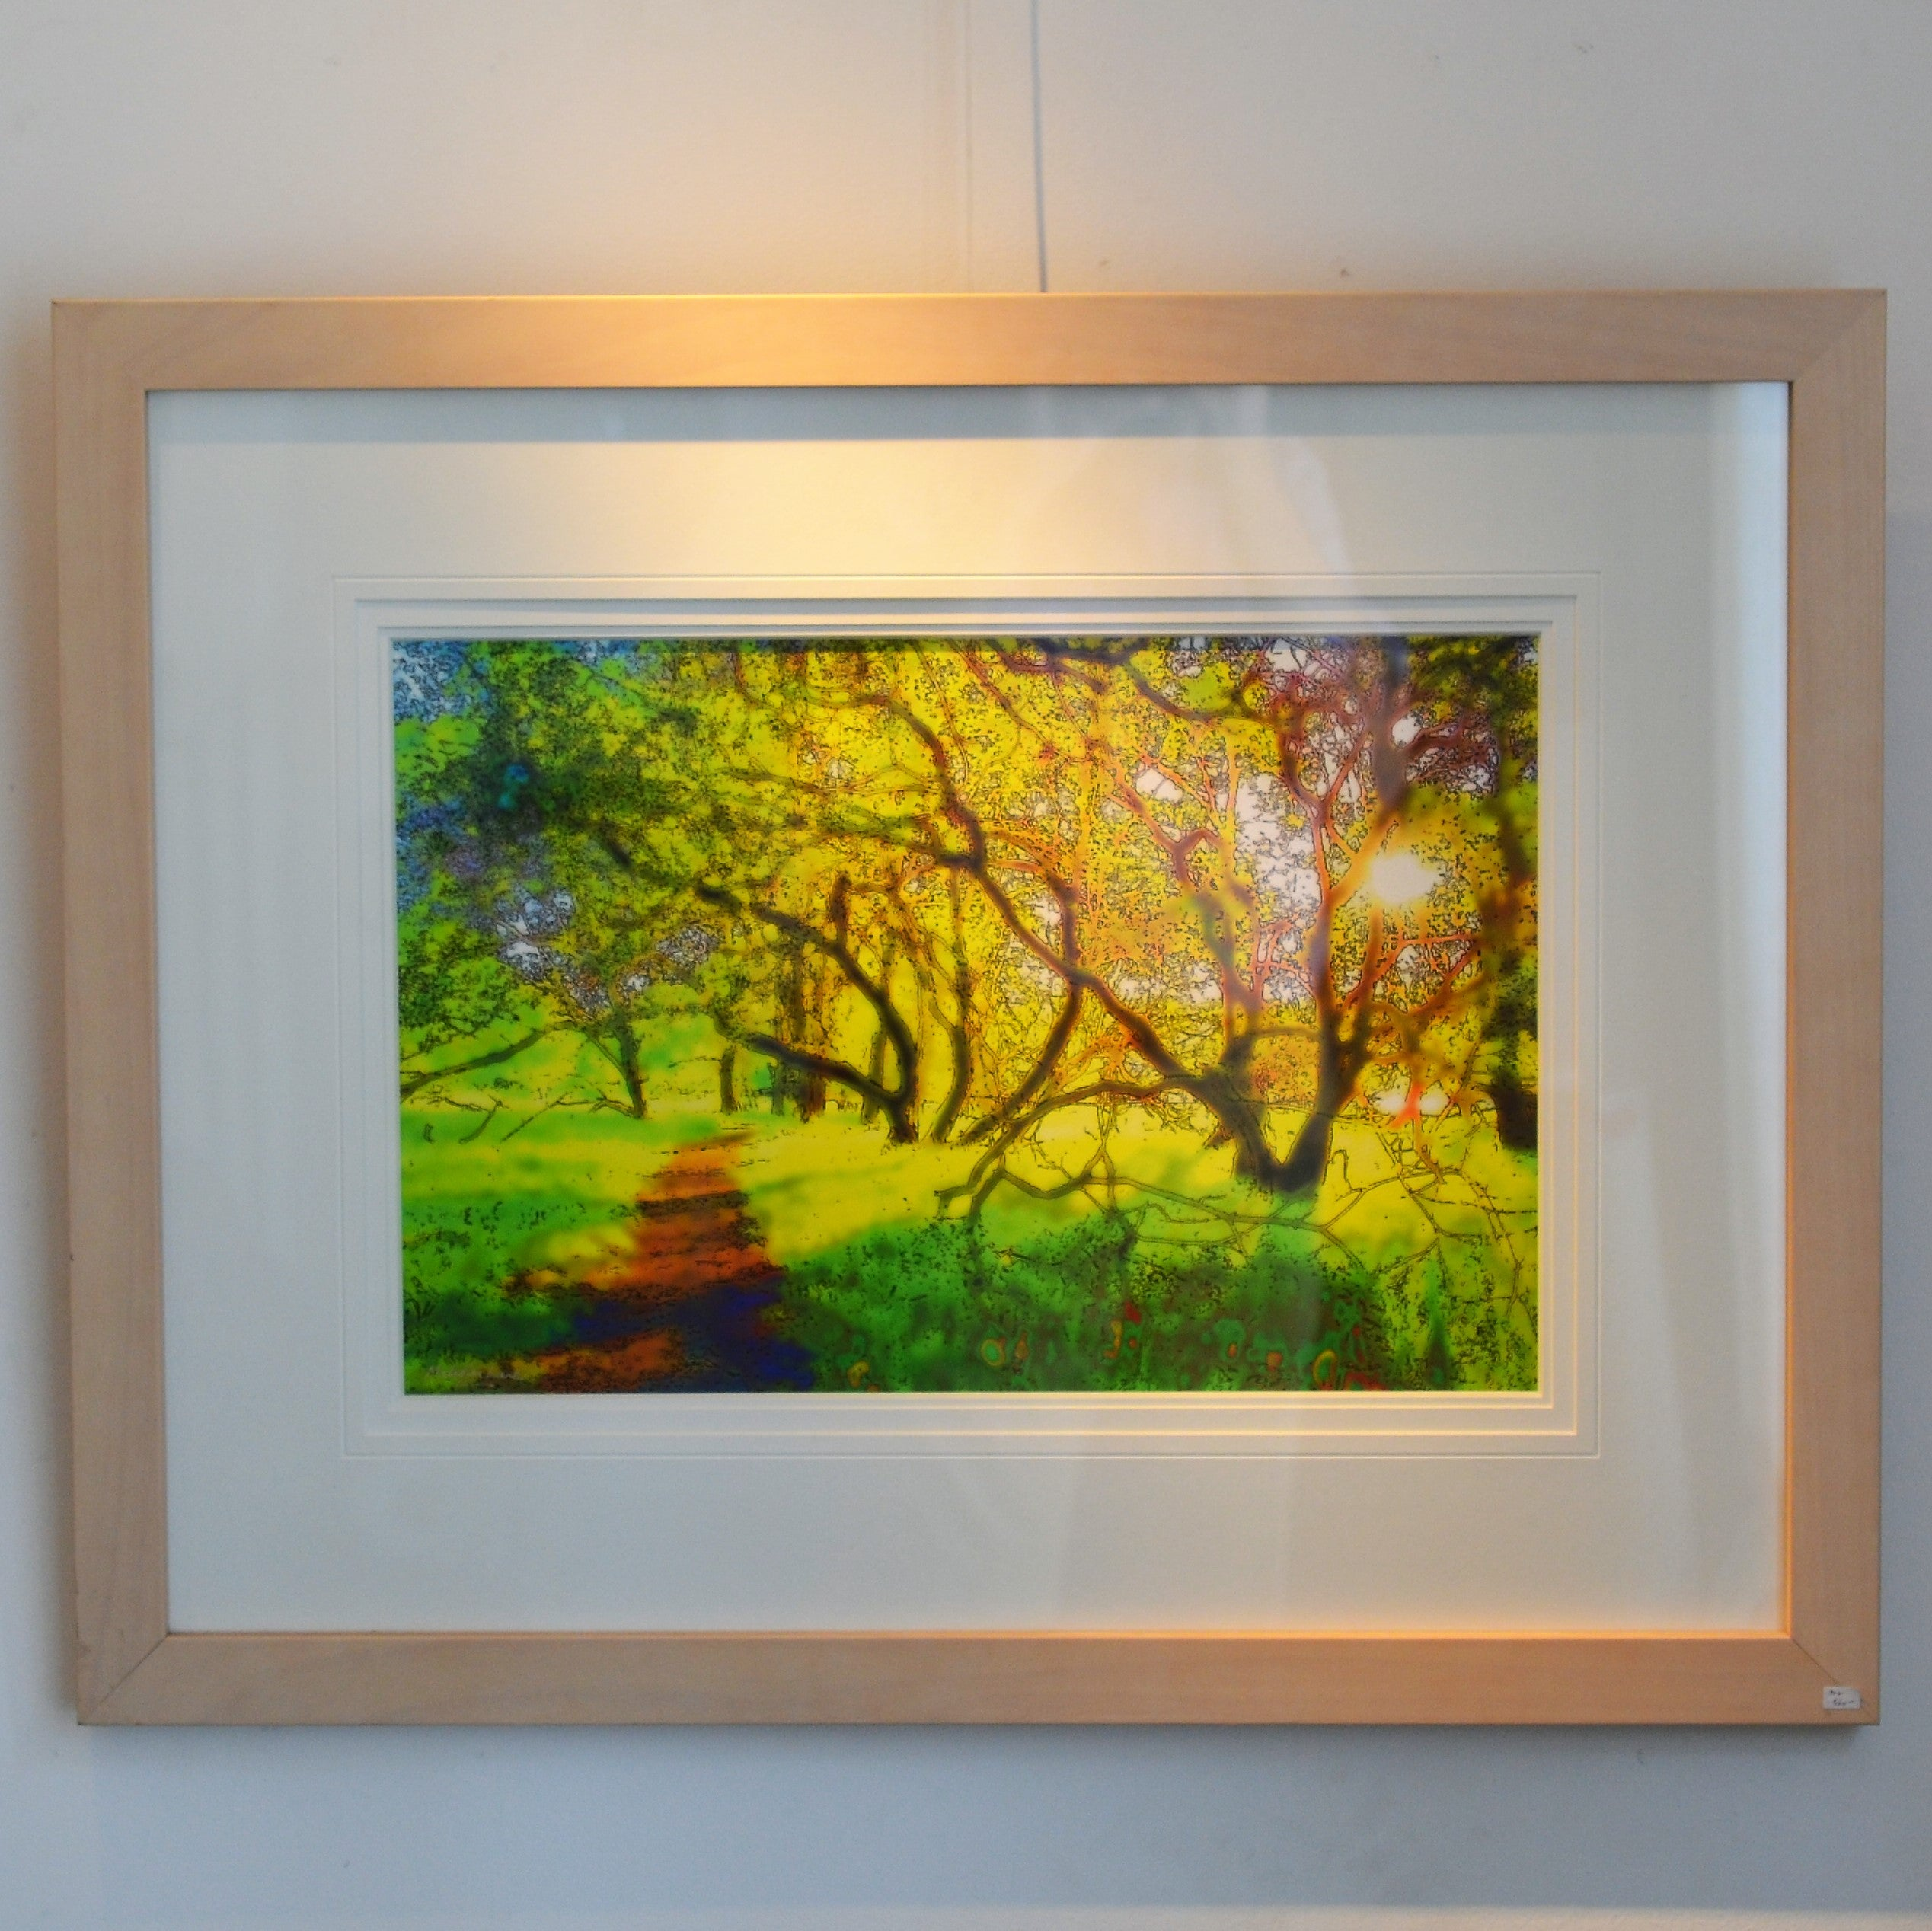 Lane, Malcolm – Enchanted Forest | Malcolm Lane | Primavera Gallery